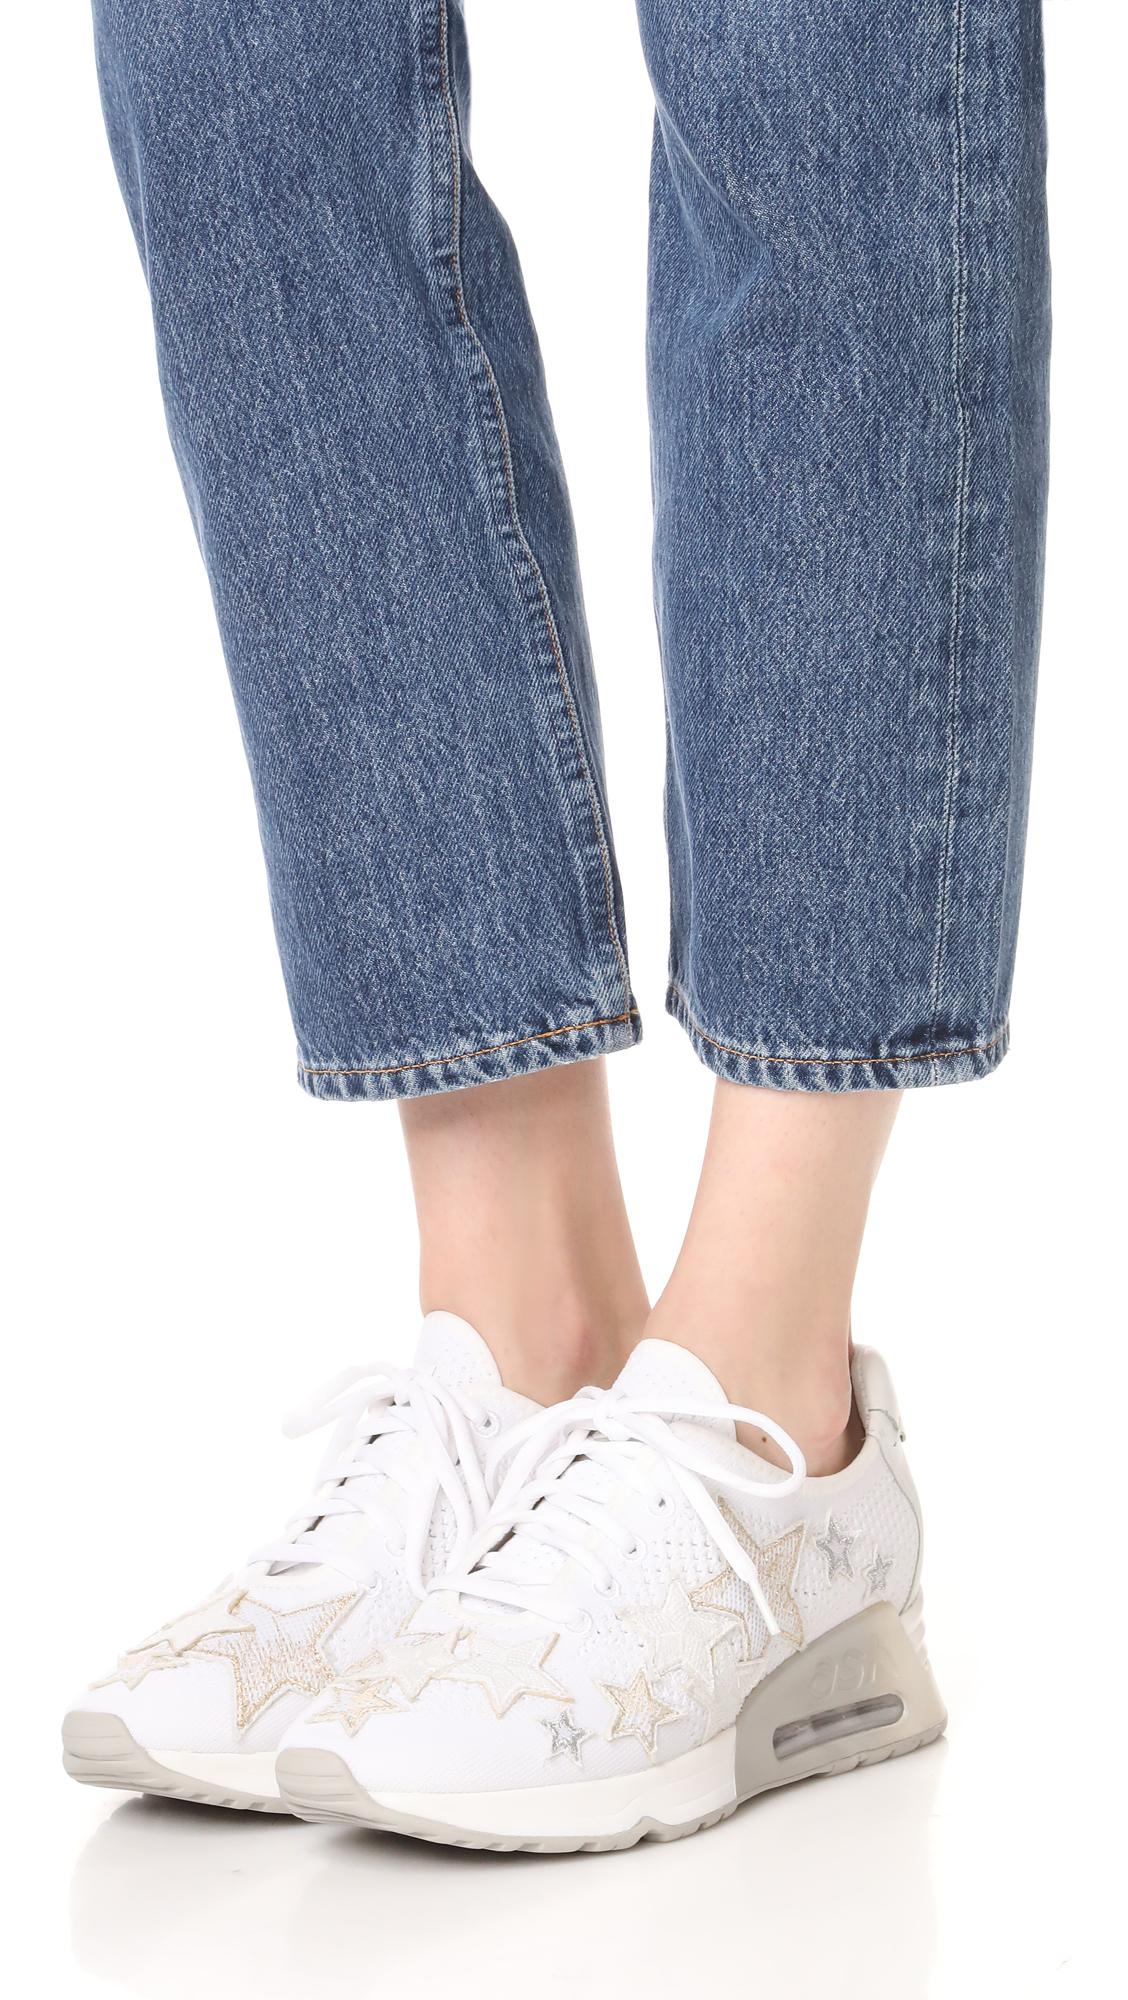 Ash Leather Lucky Star Sneakers in